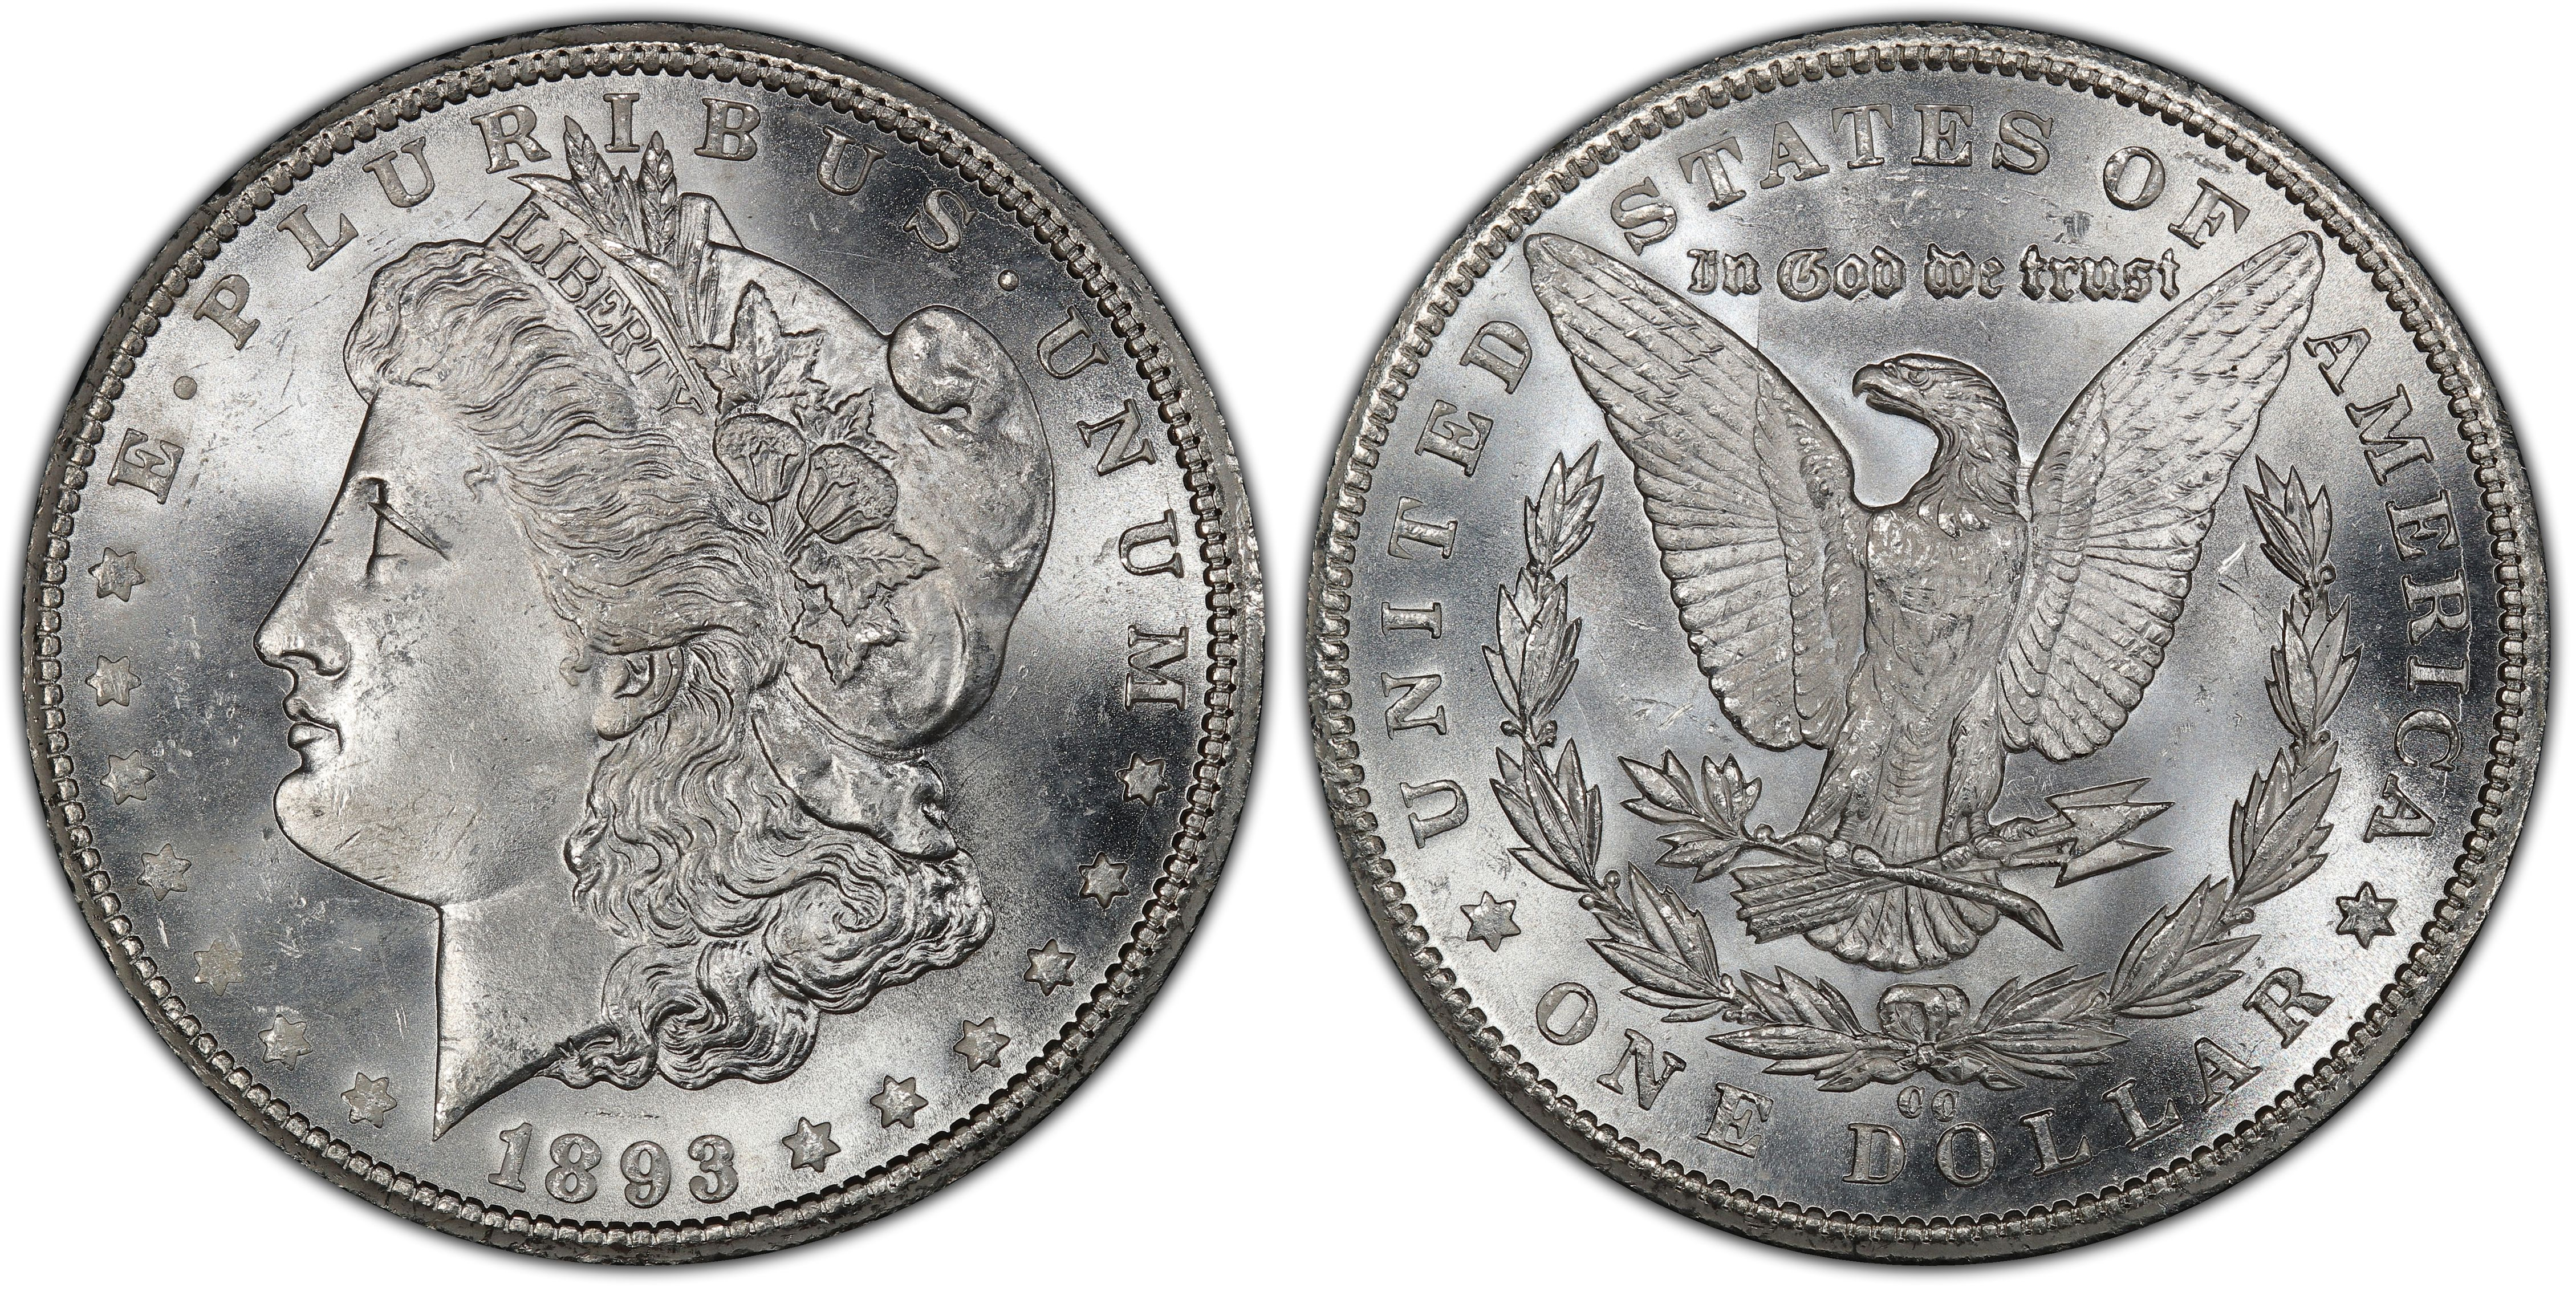 1883-o Blast White Unc Morgan Silver Dollar from a fresh Roll Will Grade Out